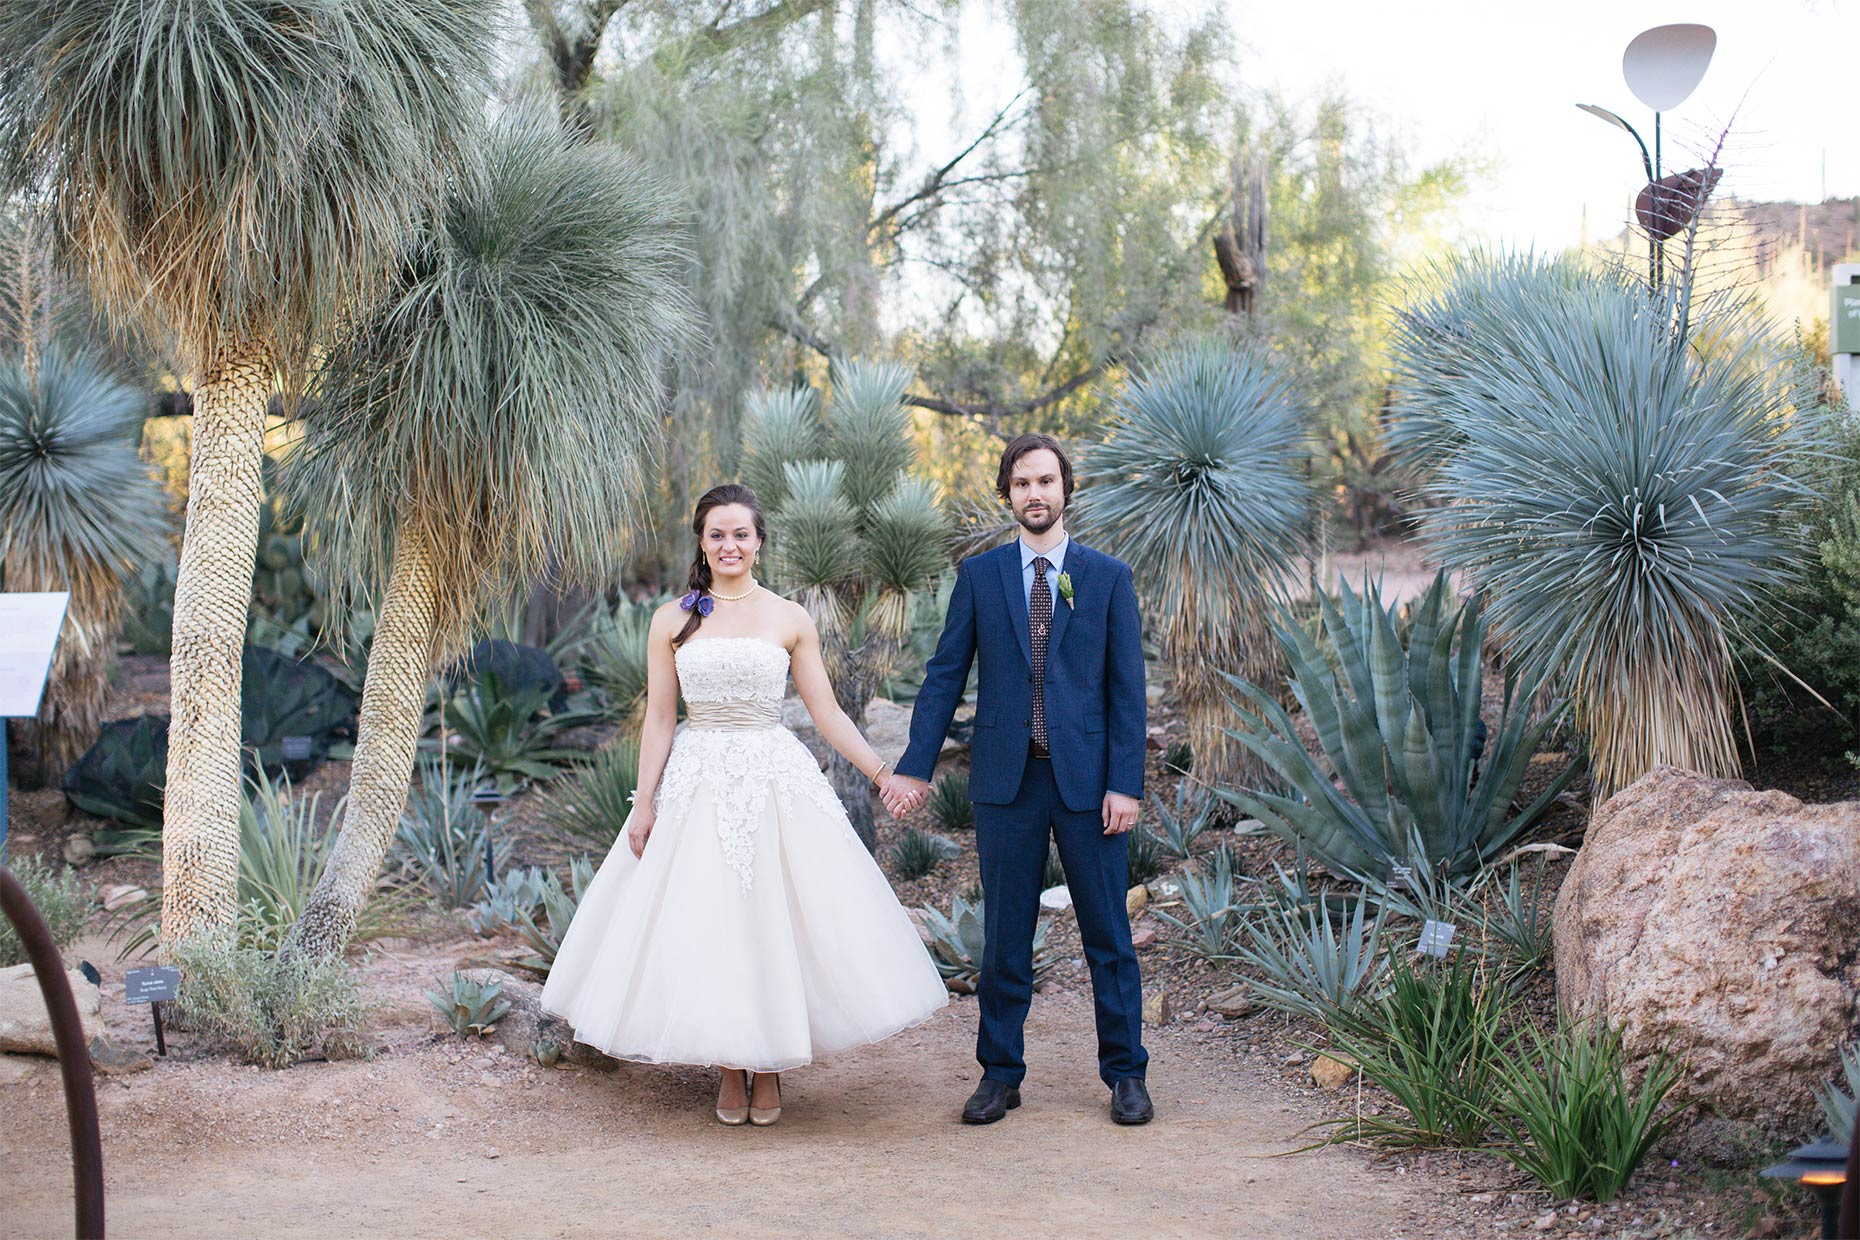 destination wedding Pheonix AZ omaha wedding photographer025